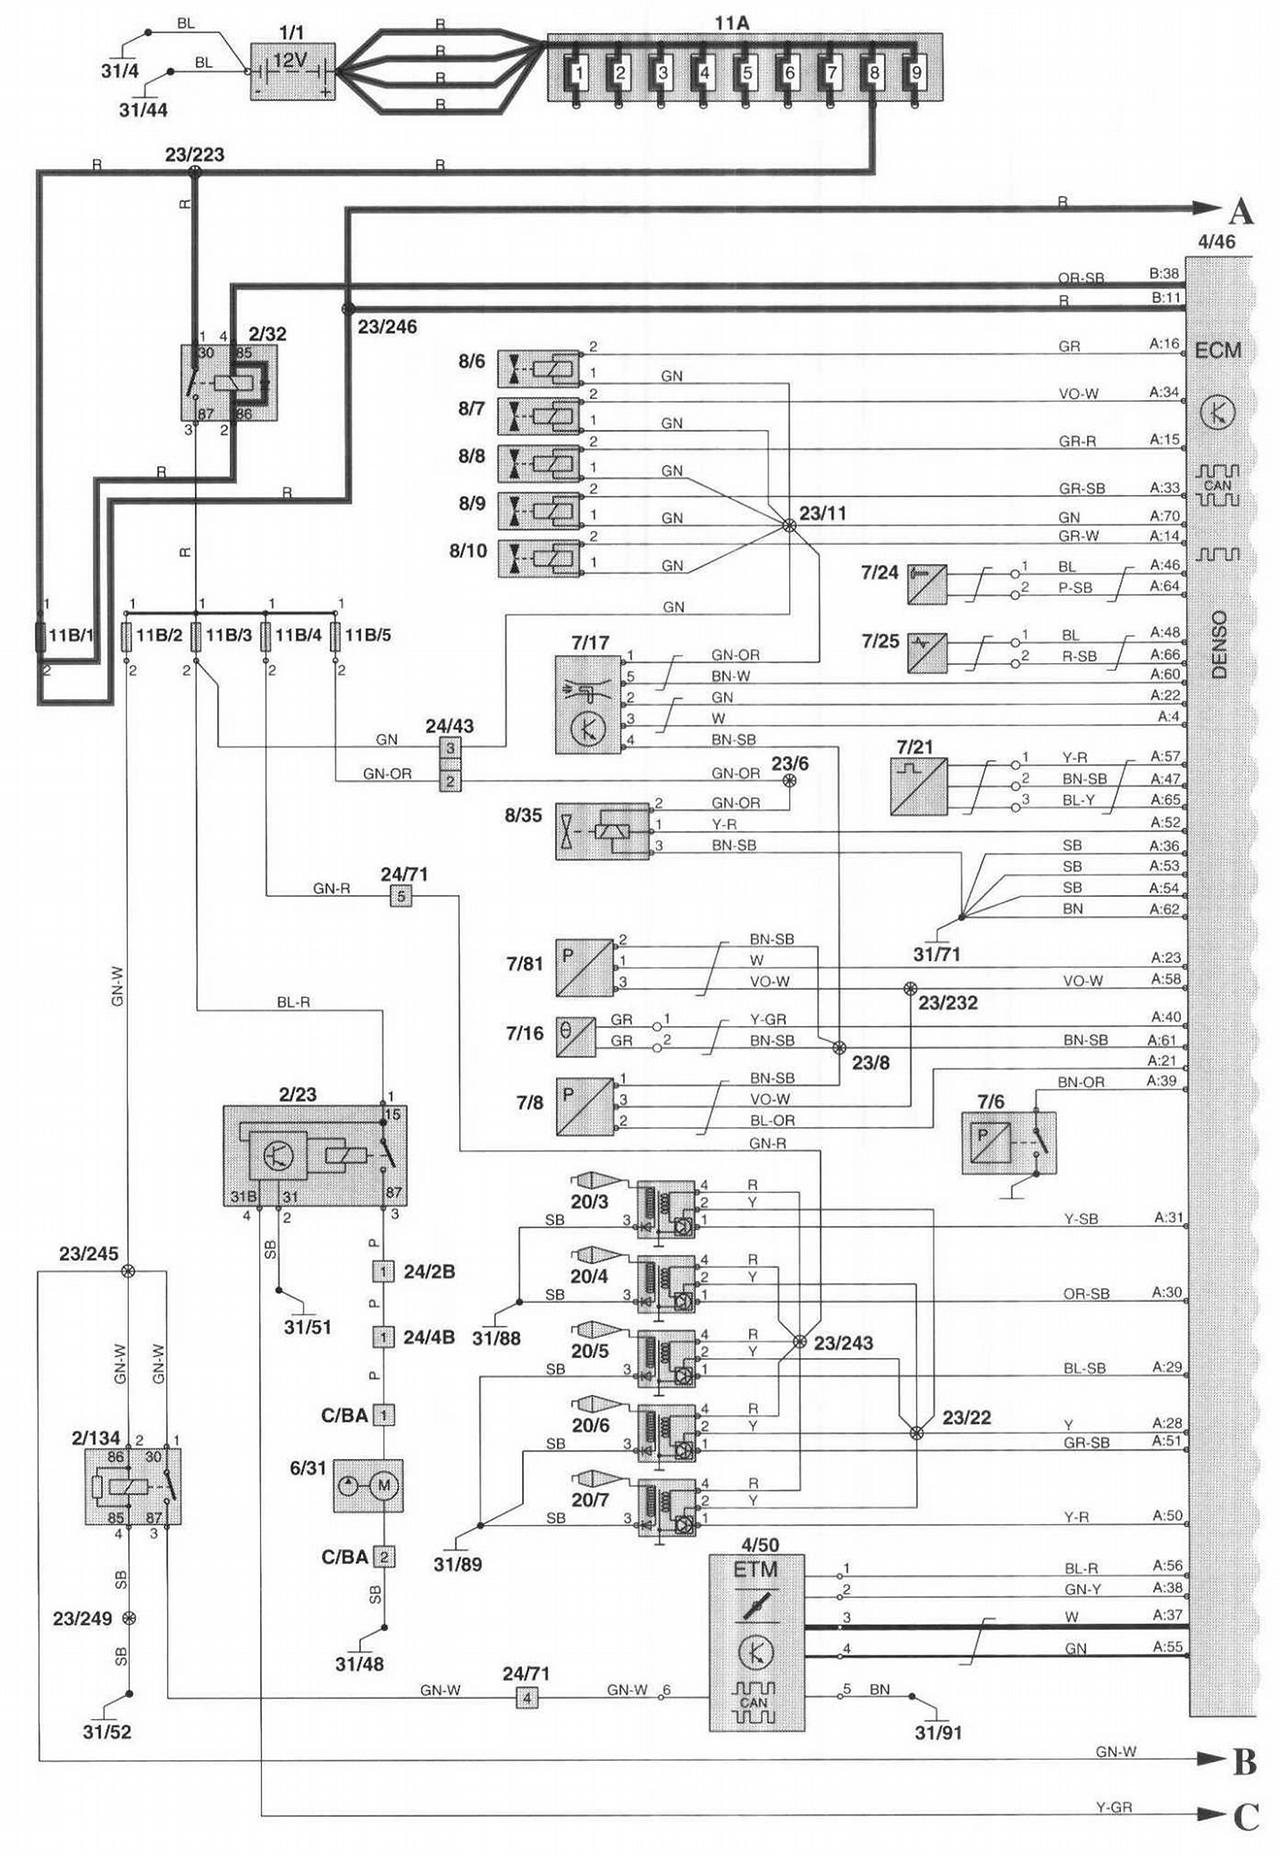 2003 Volvo Truck Wire Diagram Another Blog About Wiring For A 92 Mercury Grand Marquis Alternator Vnl Diagrams Ford F800